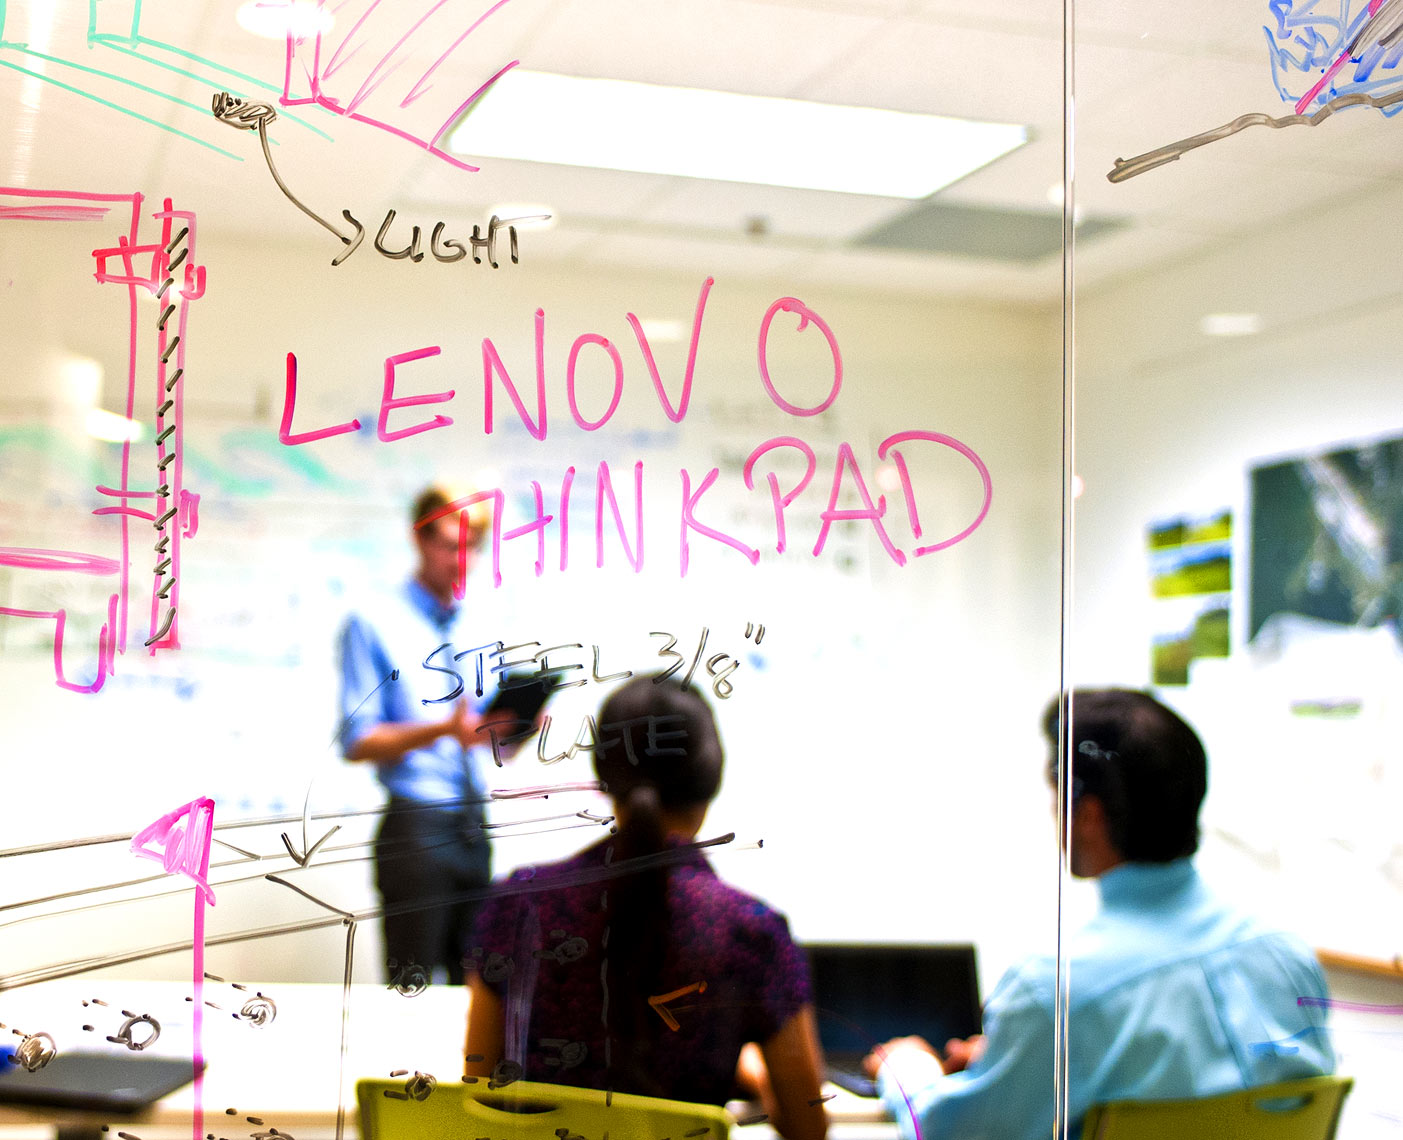 Lenovo corporate photography